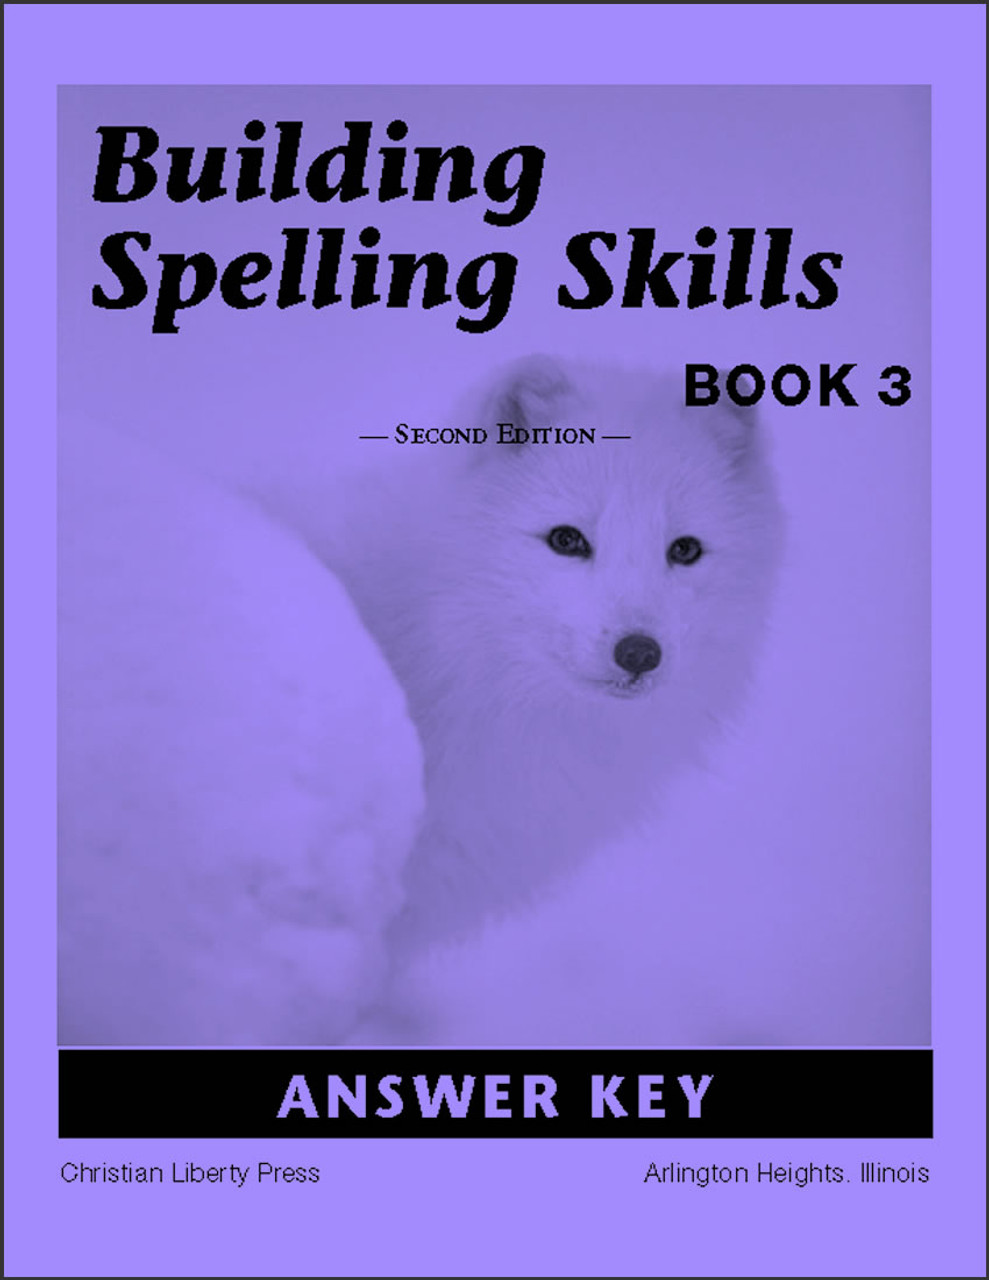 Building Spelling Skills: Book 3, 2nd edition - Answer Key